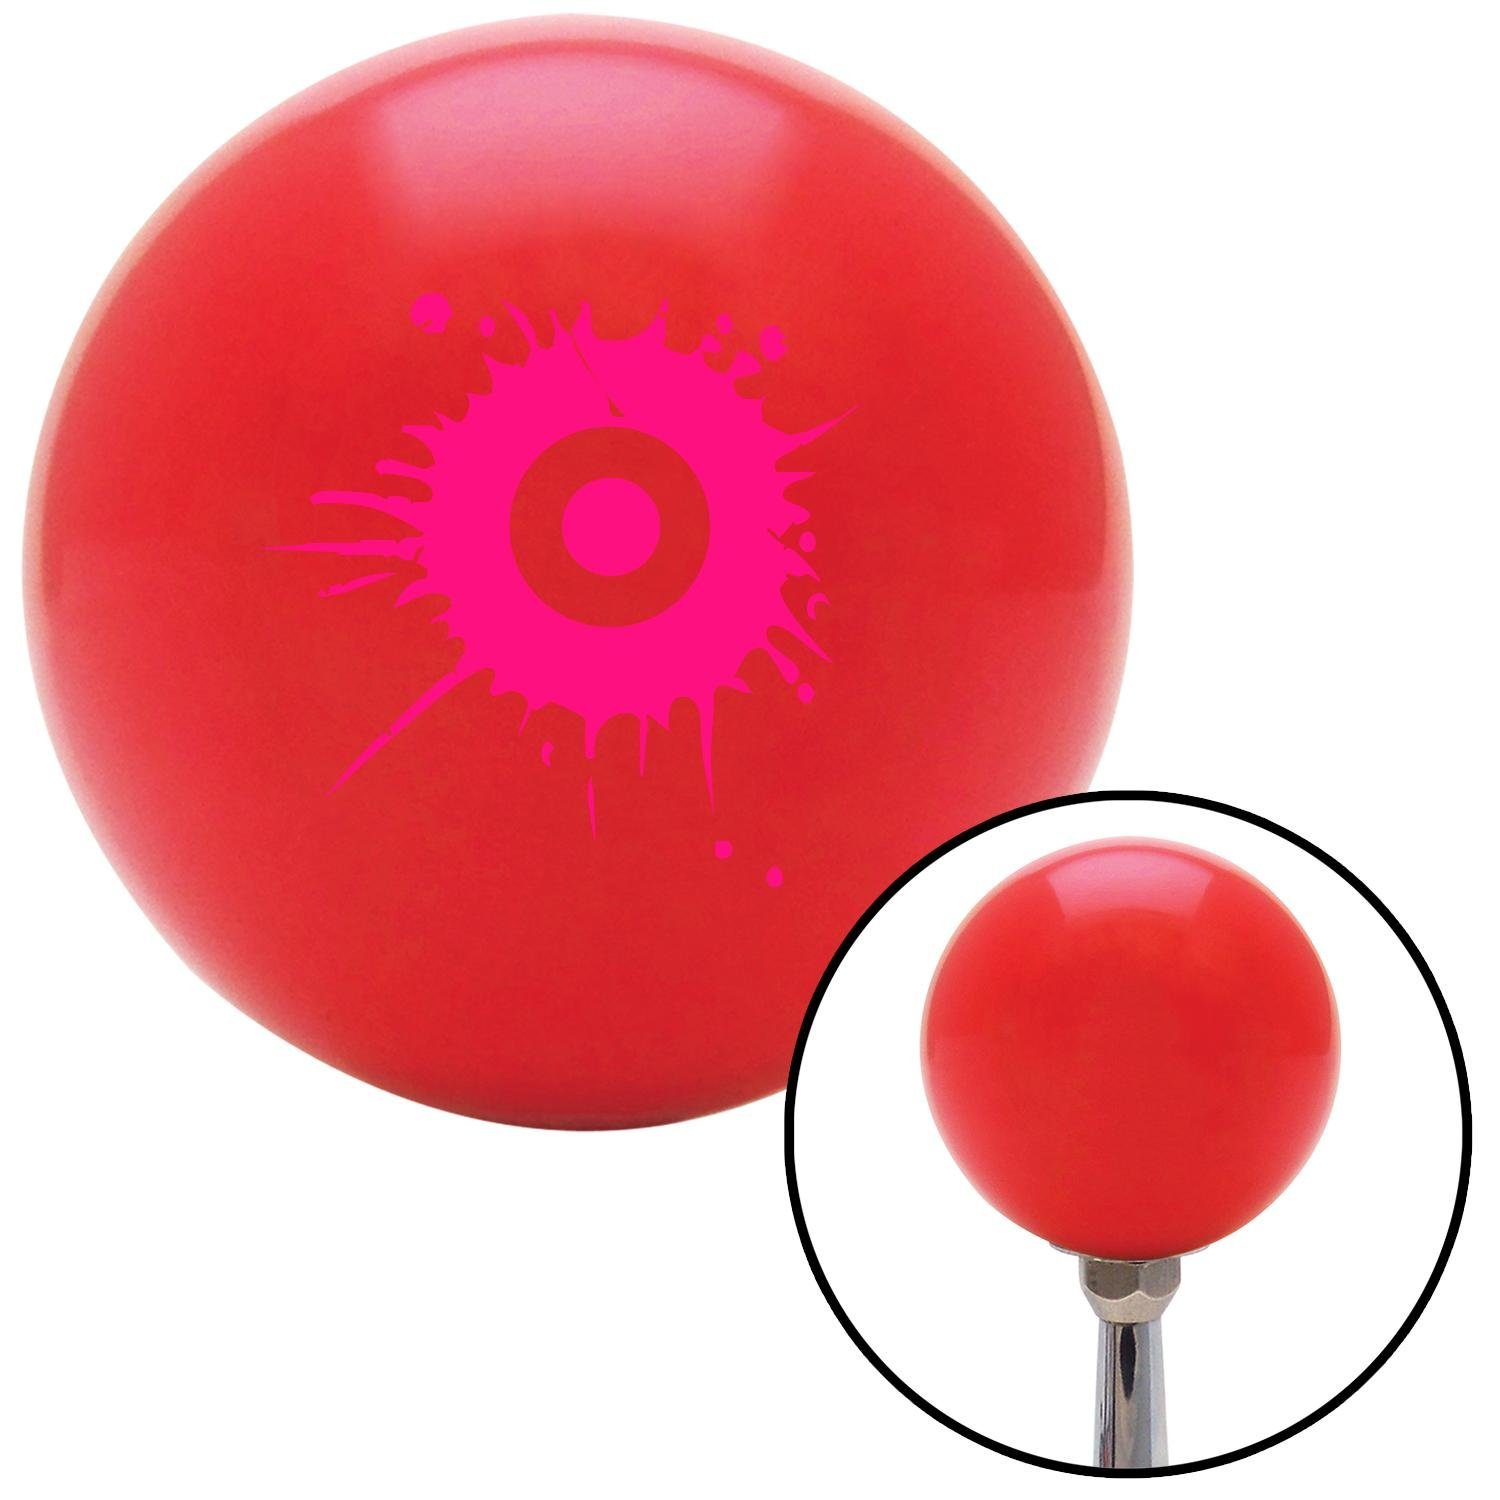 American Shifter 102743 Red Shift Knob with M16 x 1.5 Insert Pink Target w//Splatter